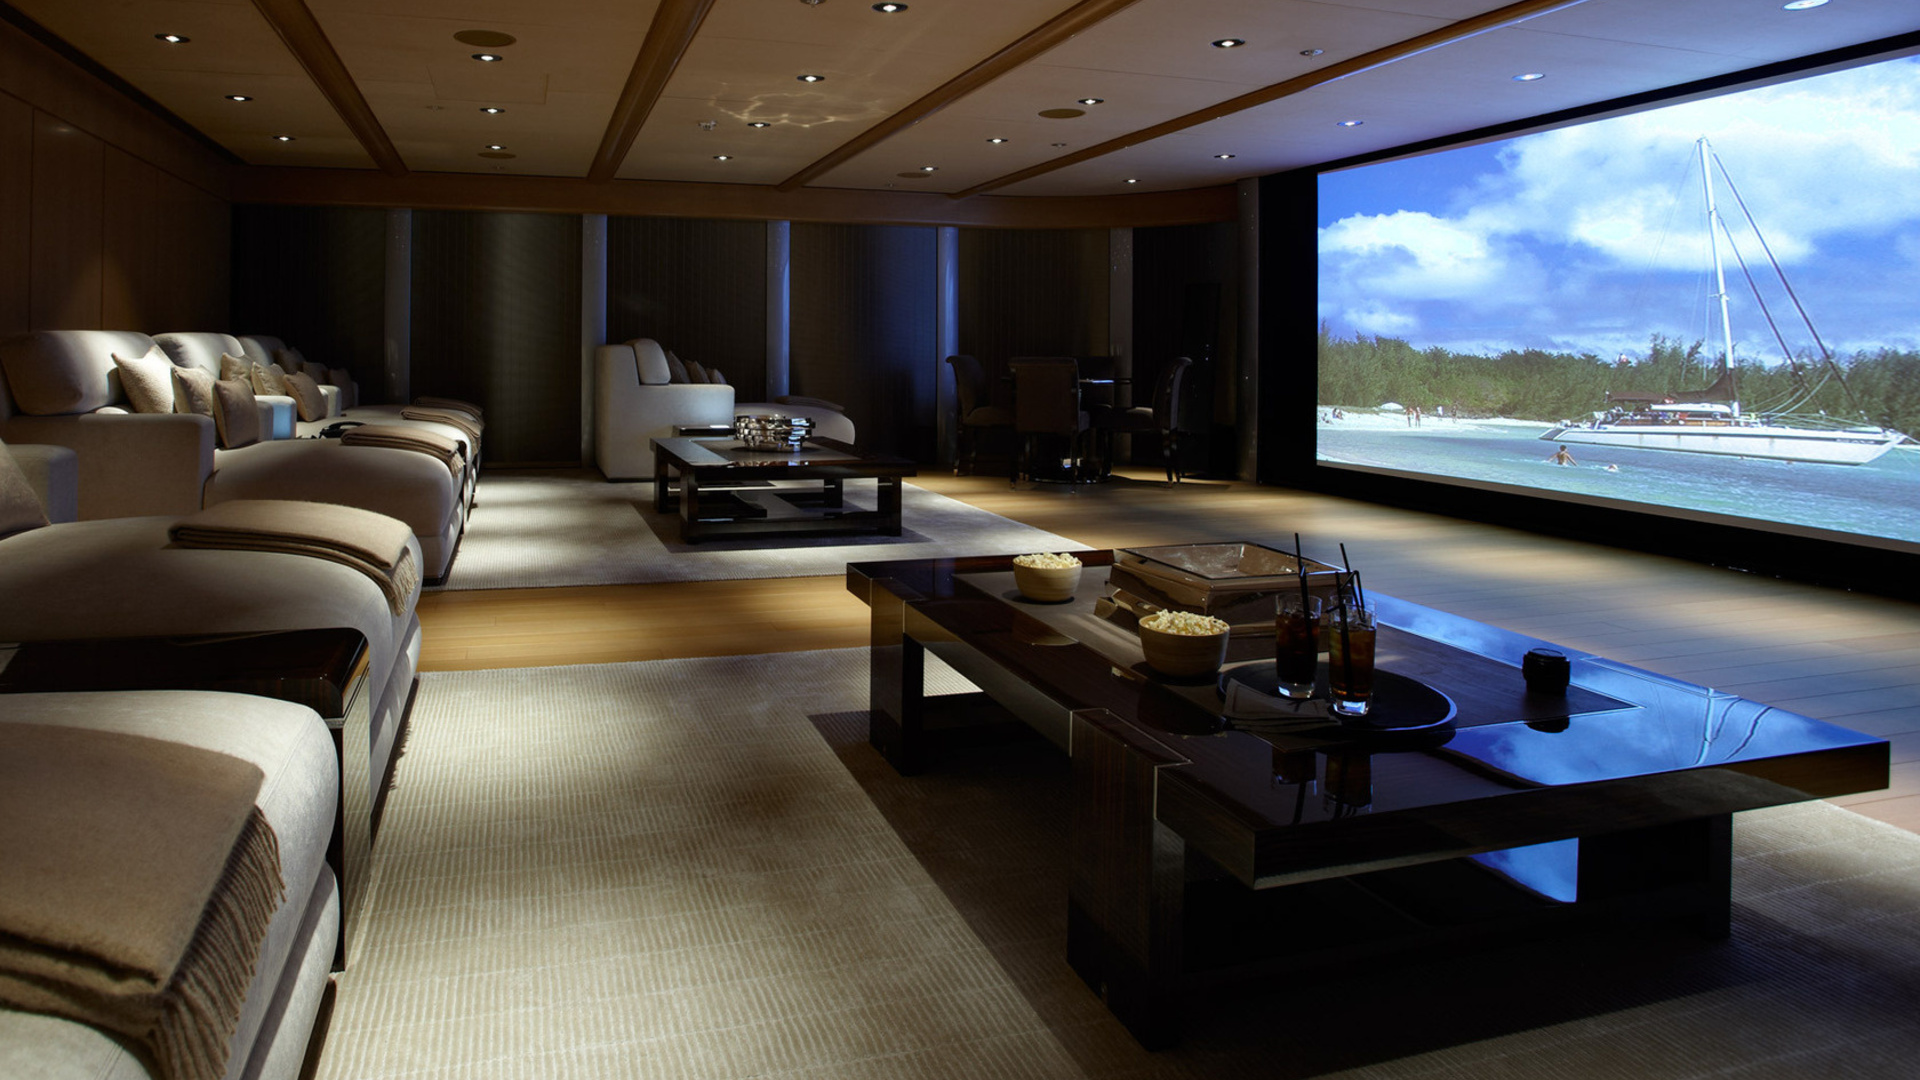 Captivating Home Theaters An Introduction Smart Armor